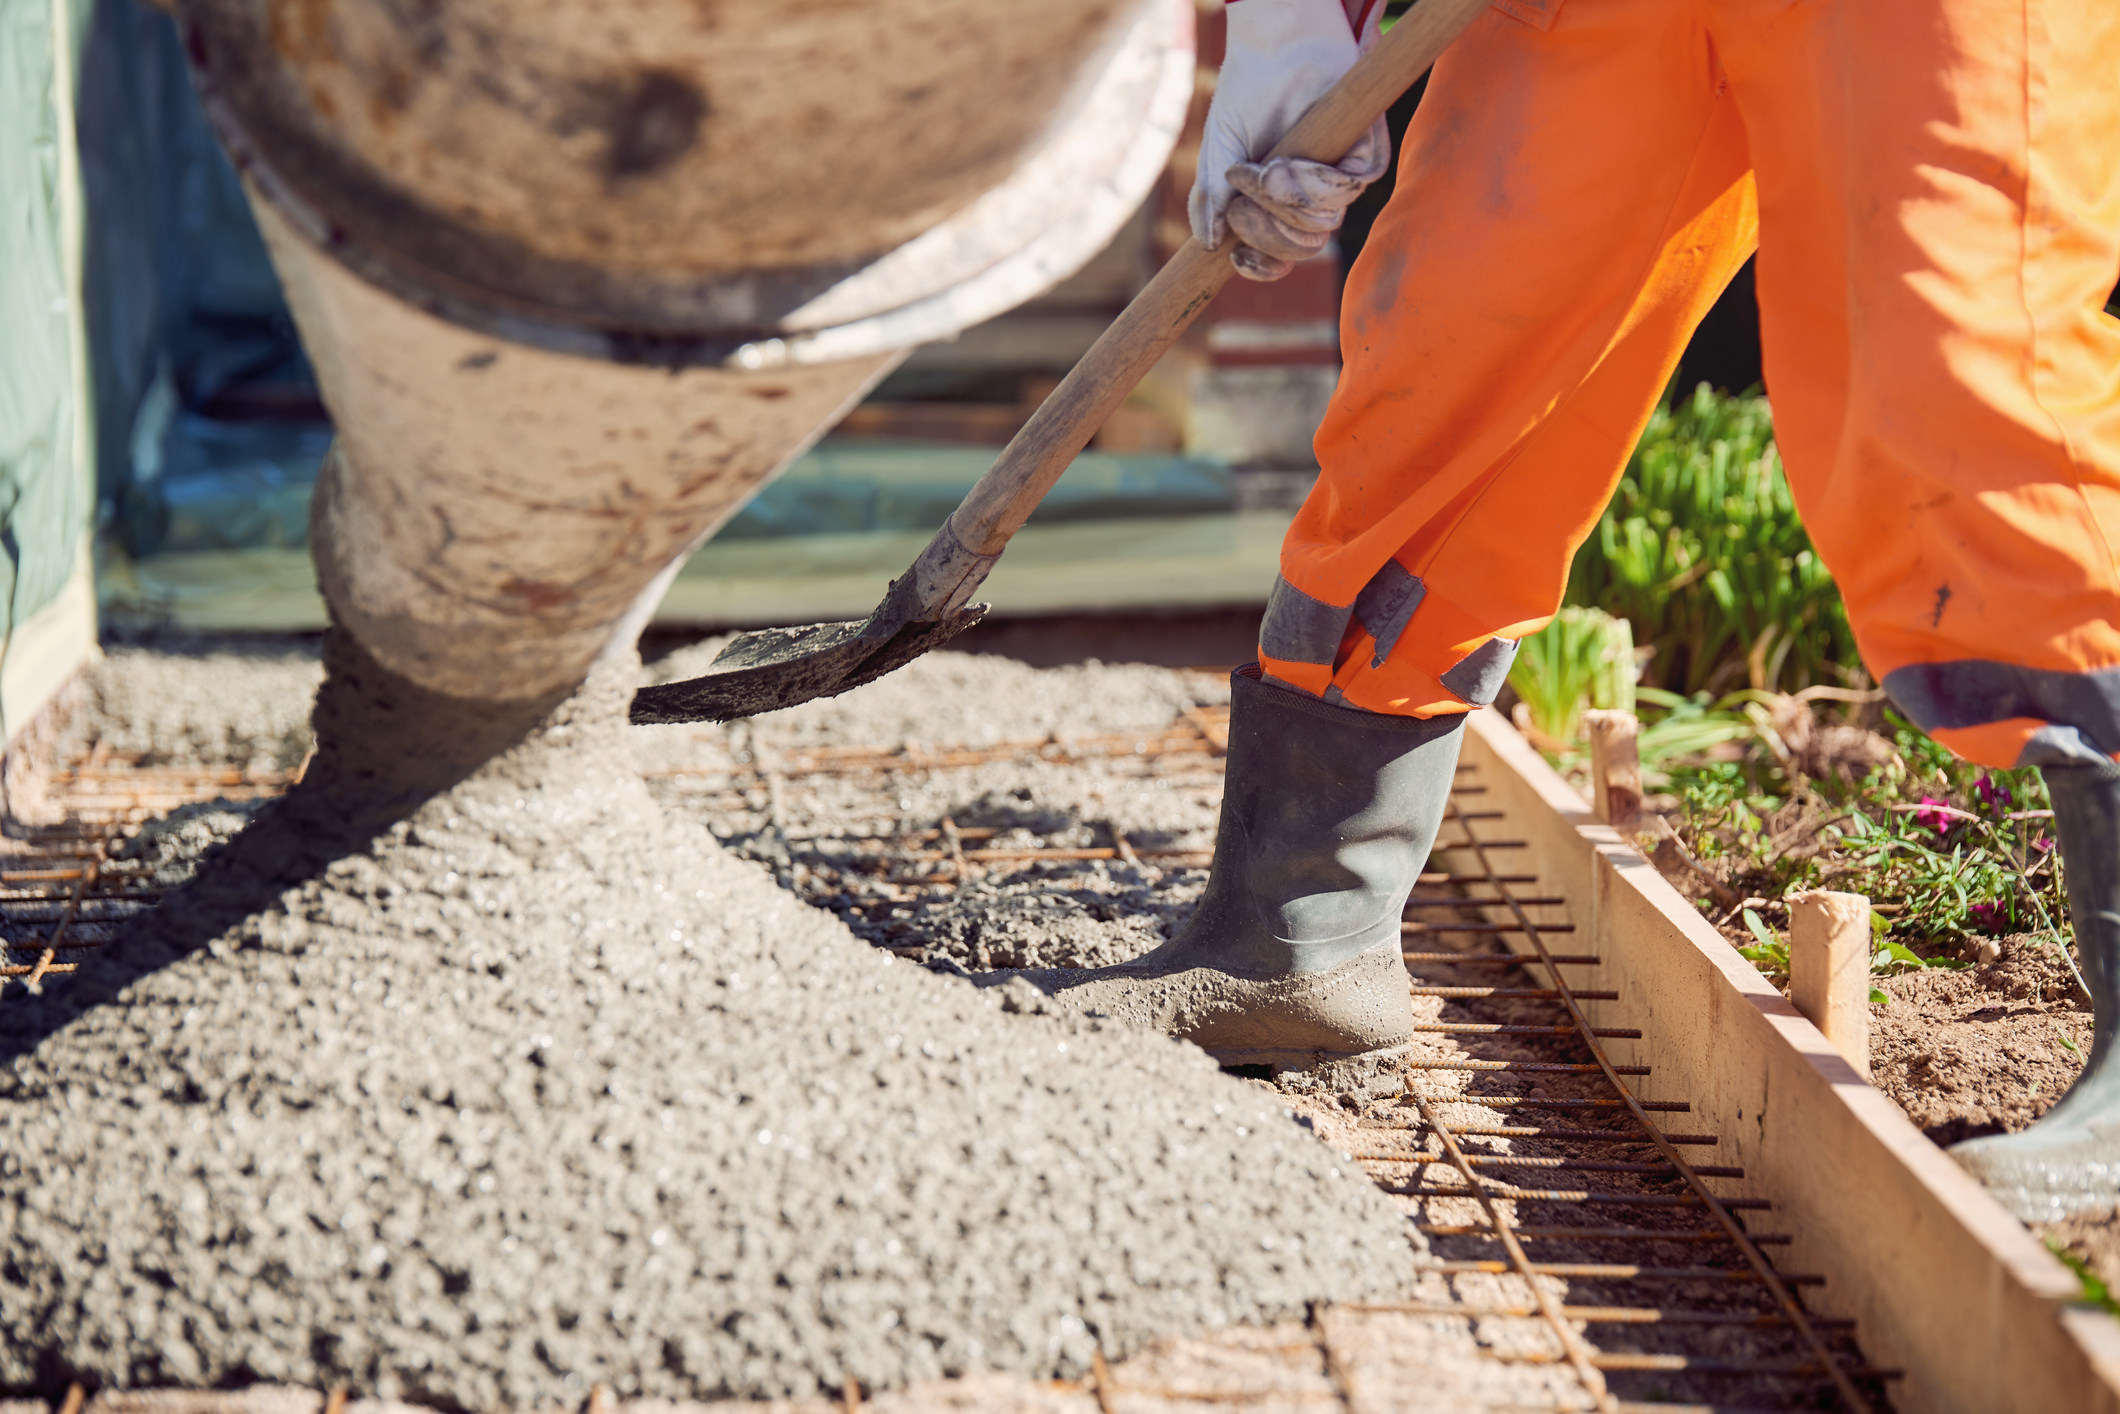 Concrete Work - Specializing in New Construction, Demolition and Replacement, Curb and Gutter, Sidewalks, Slabs, Foundations, and Decorative Concrete.